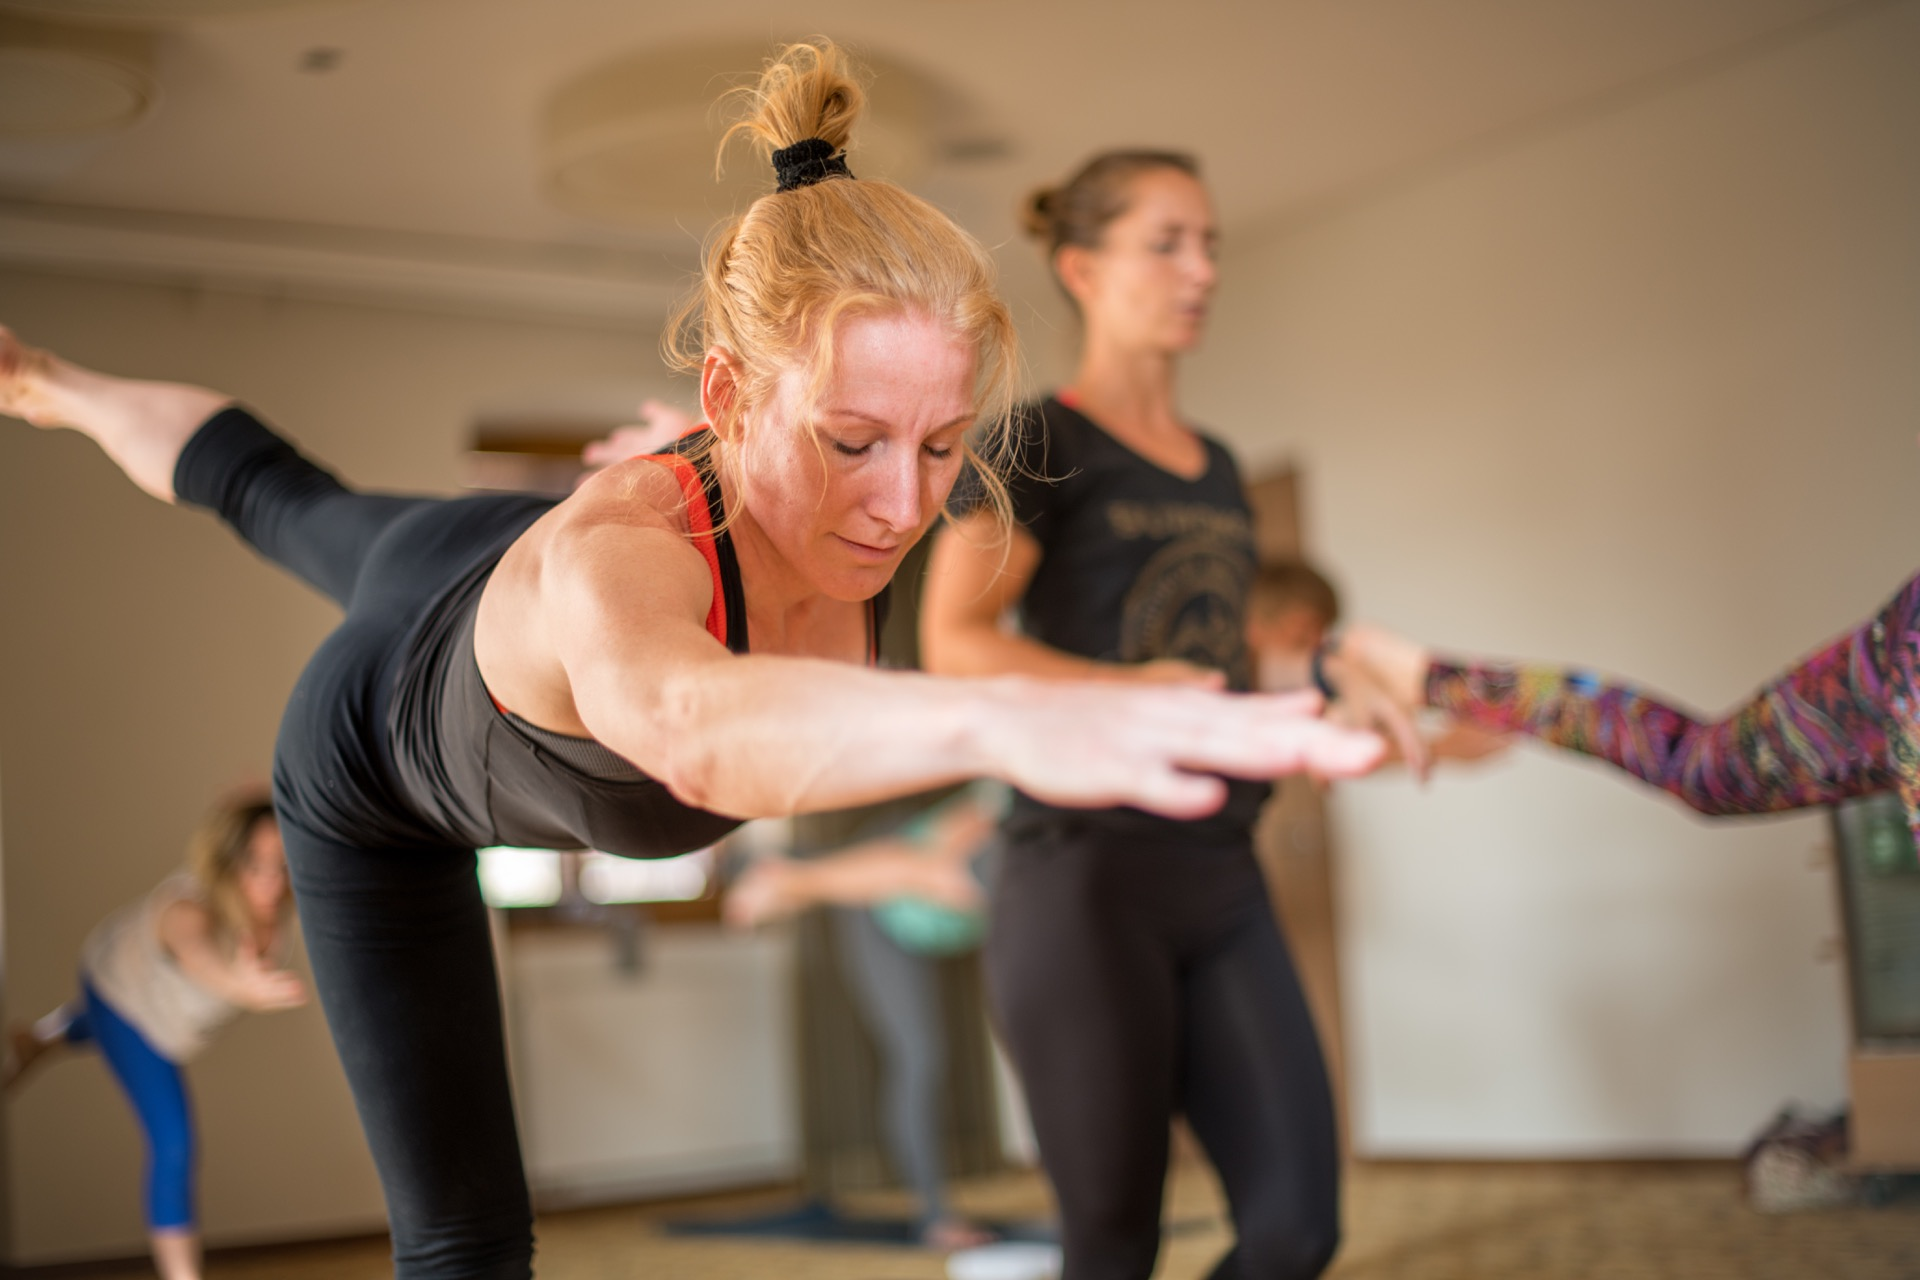 Hie-Kim-Friends-2019-Yoga-Retreat-Alina-Matis-Photography-032 - Hie Kim Yoga - Yoga Retreat - Yoga Workshops und Reisen